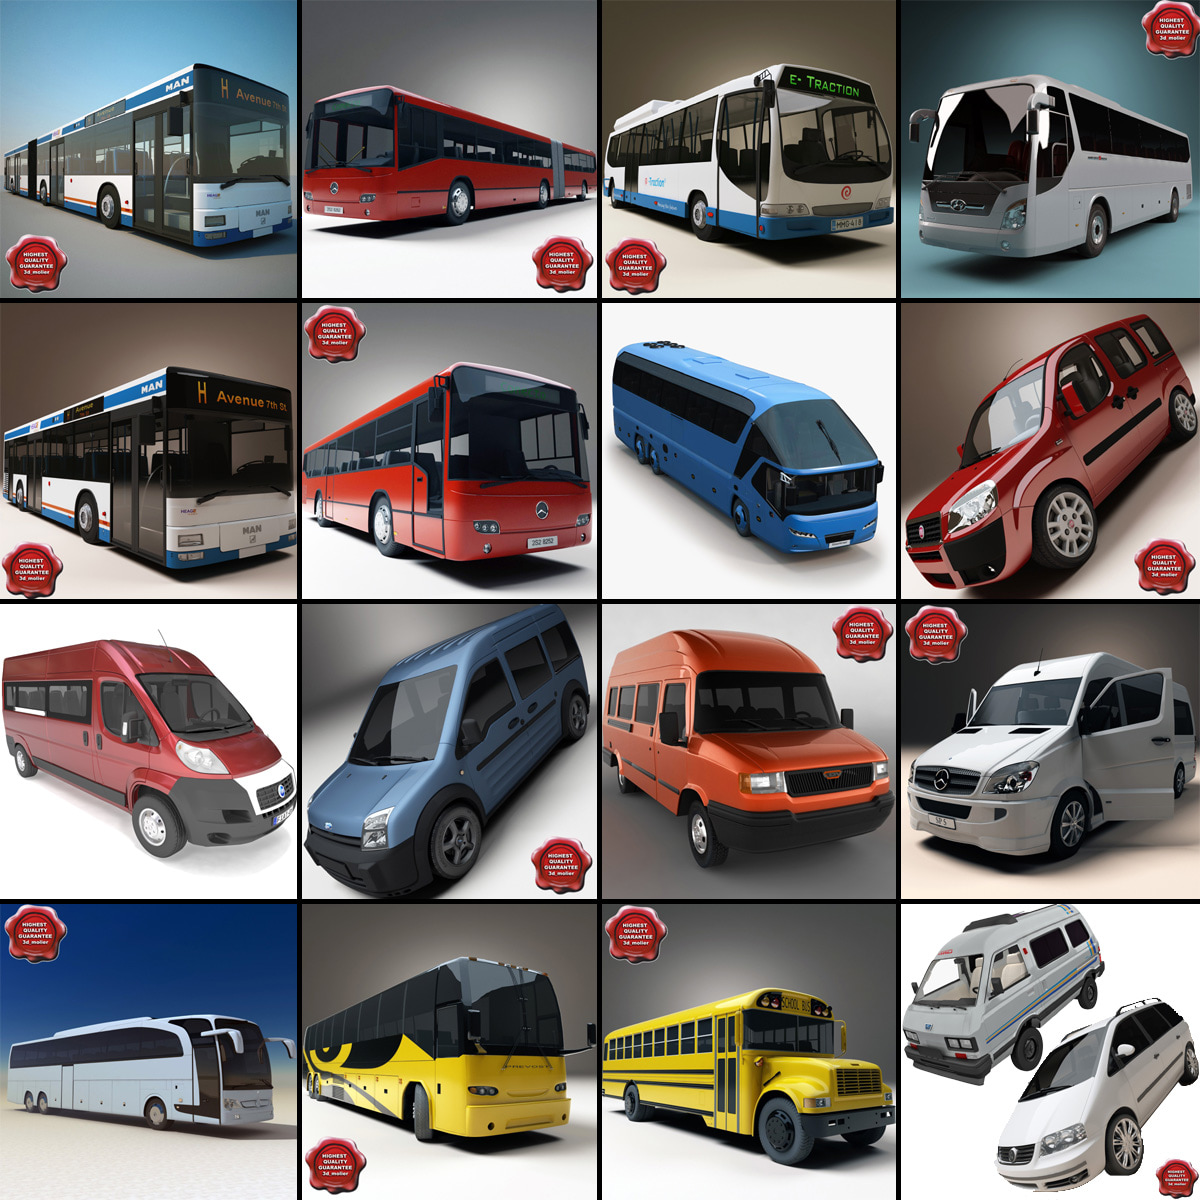 Bus Collection 7 copy.jpg